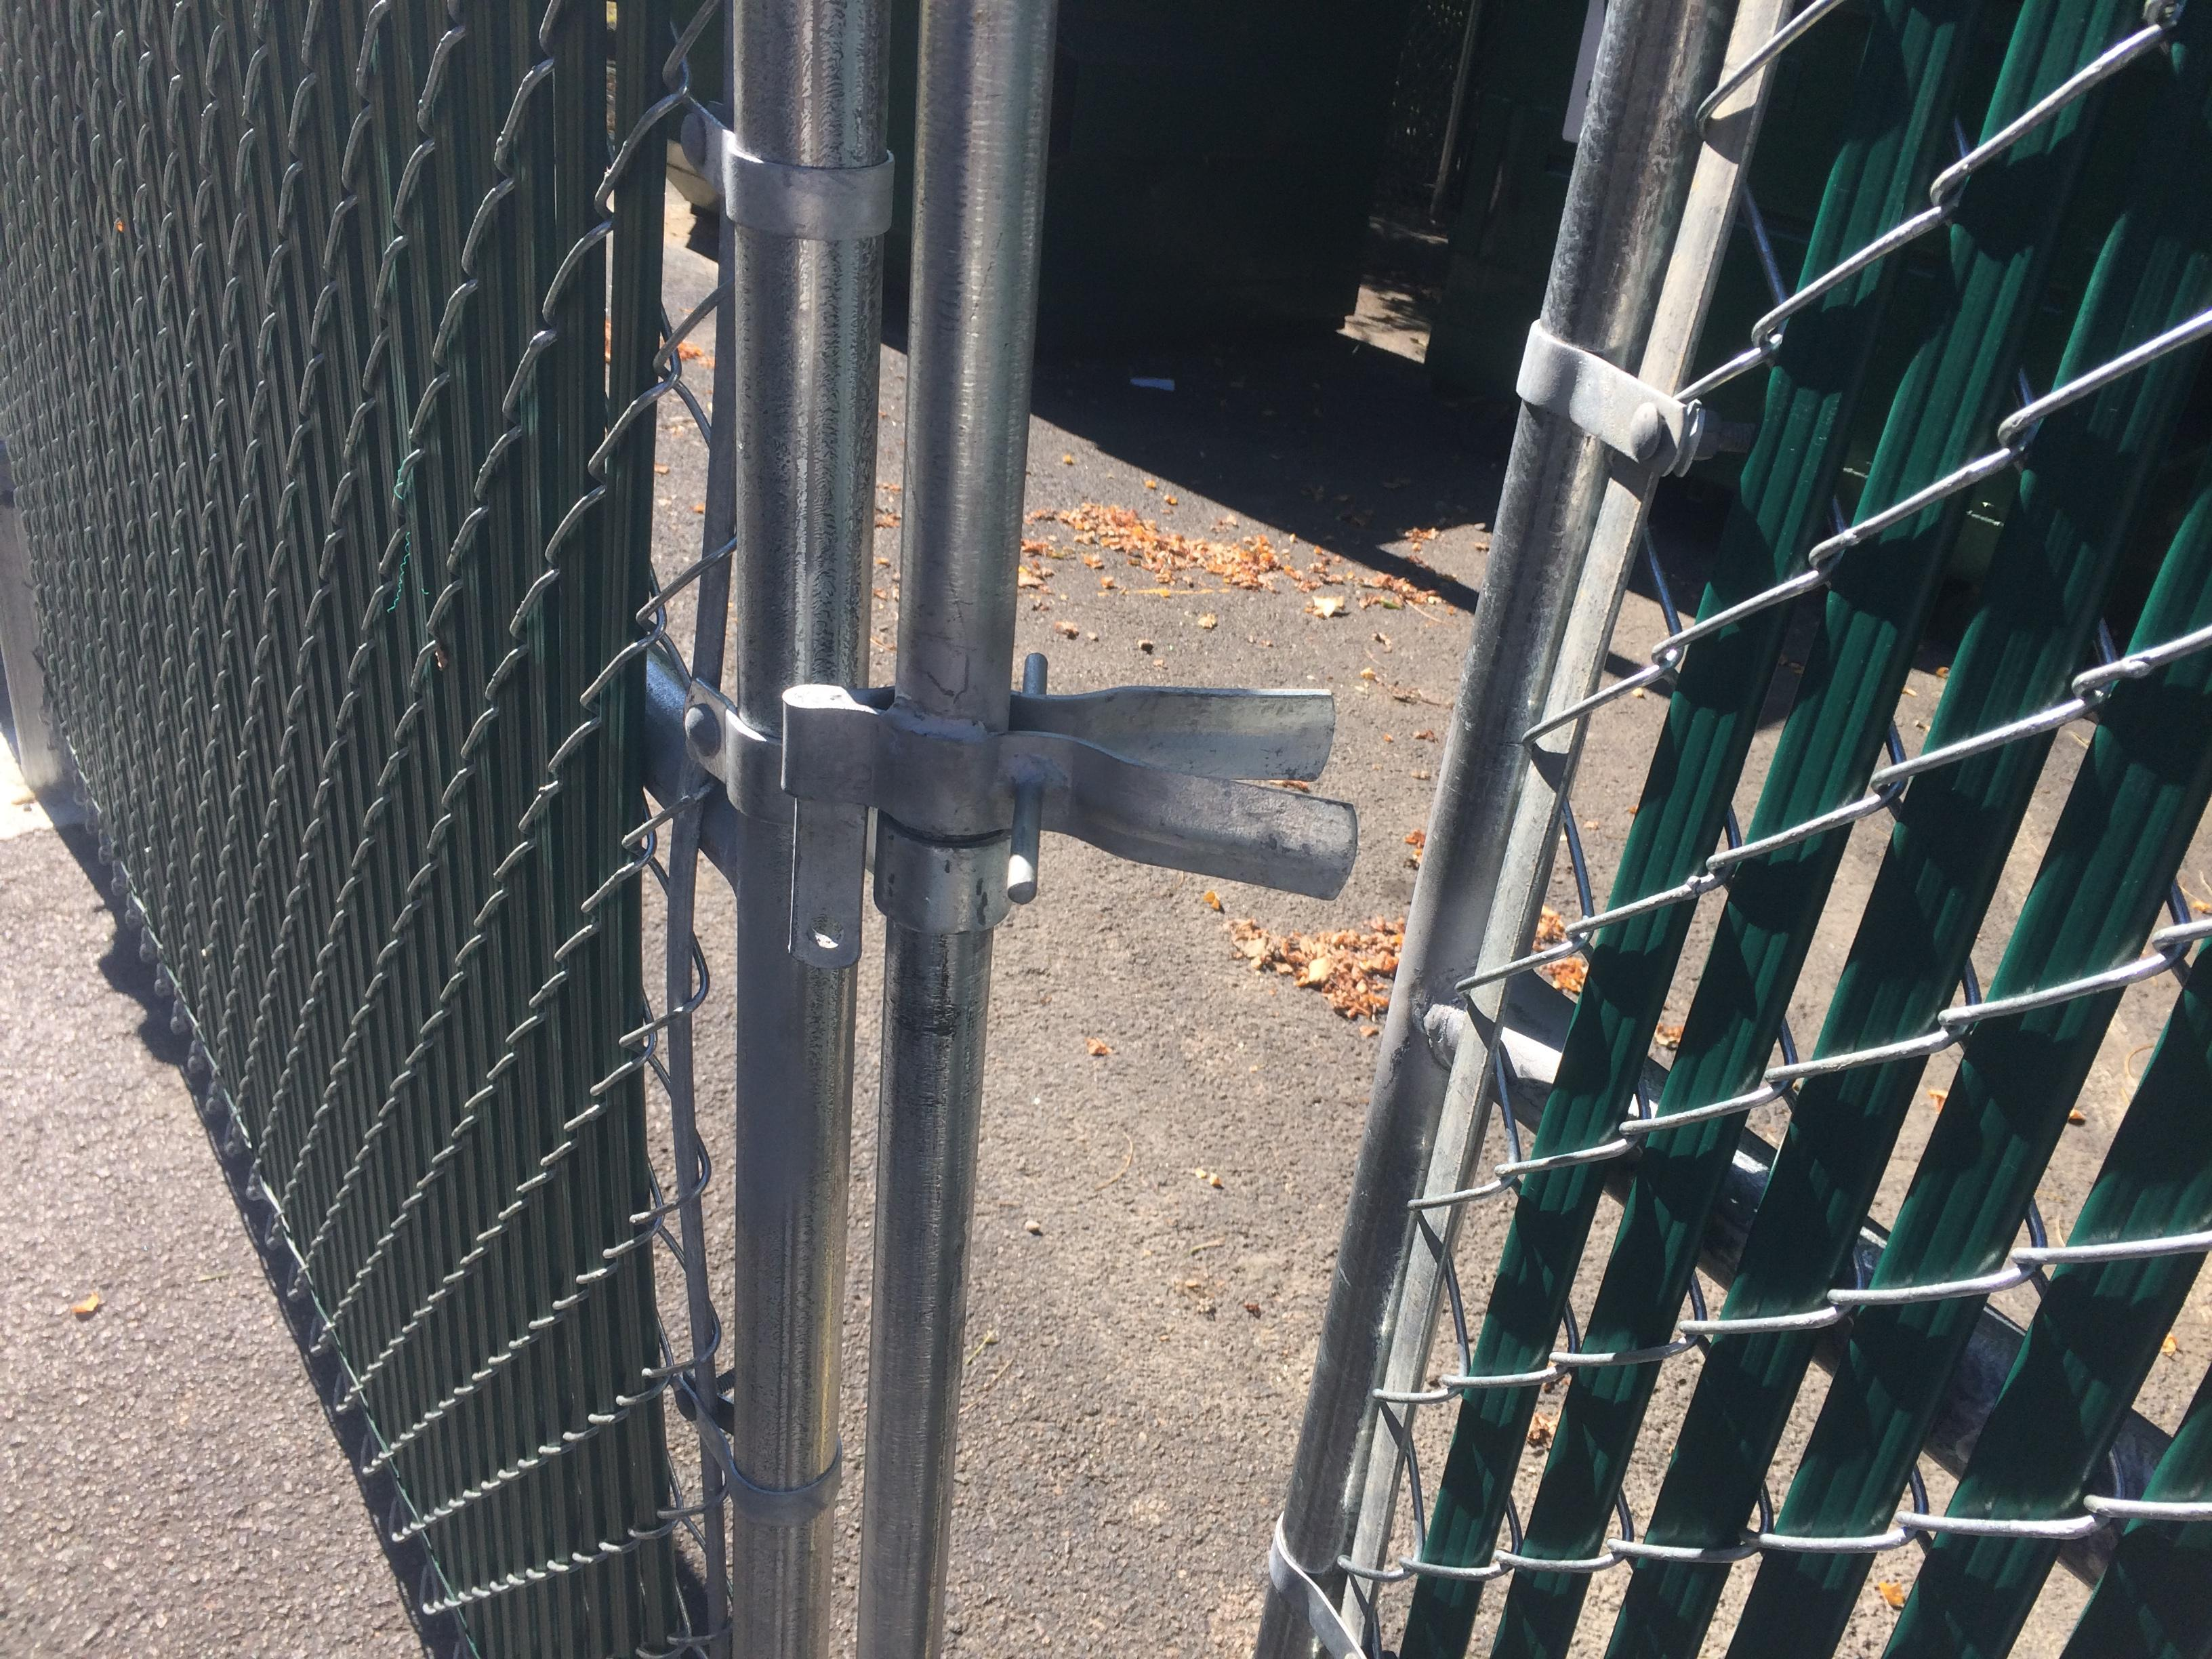 Dumpster enclosure uses chain link fencing and green slats to hide commercial trash cans in Richmond, VA